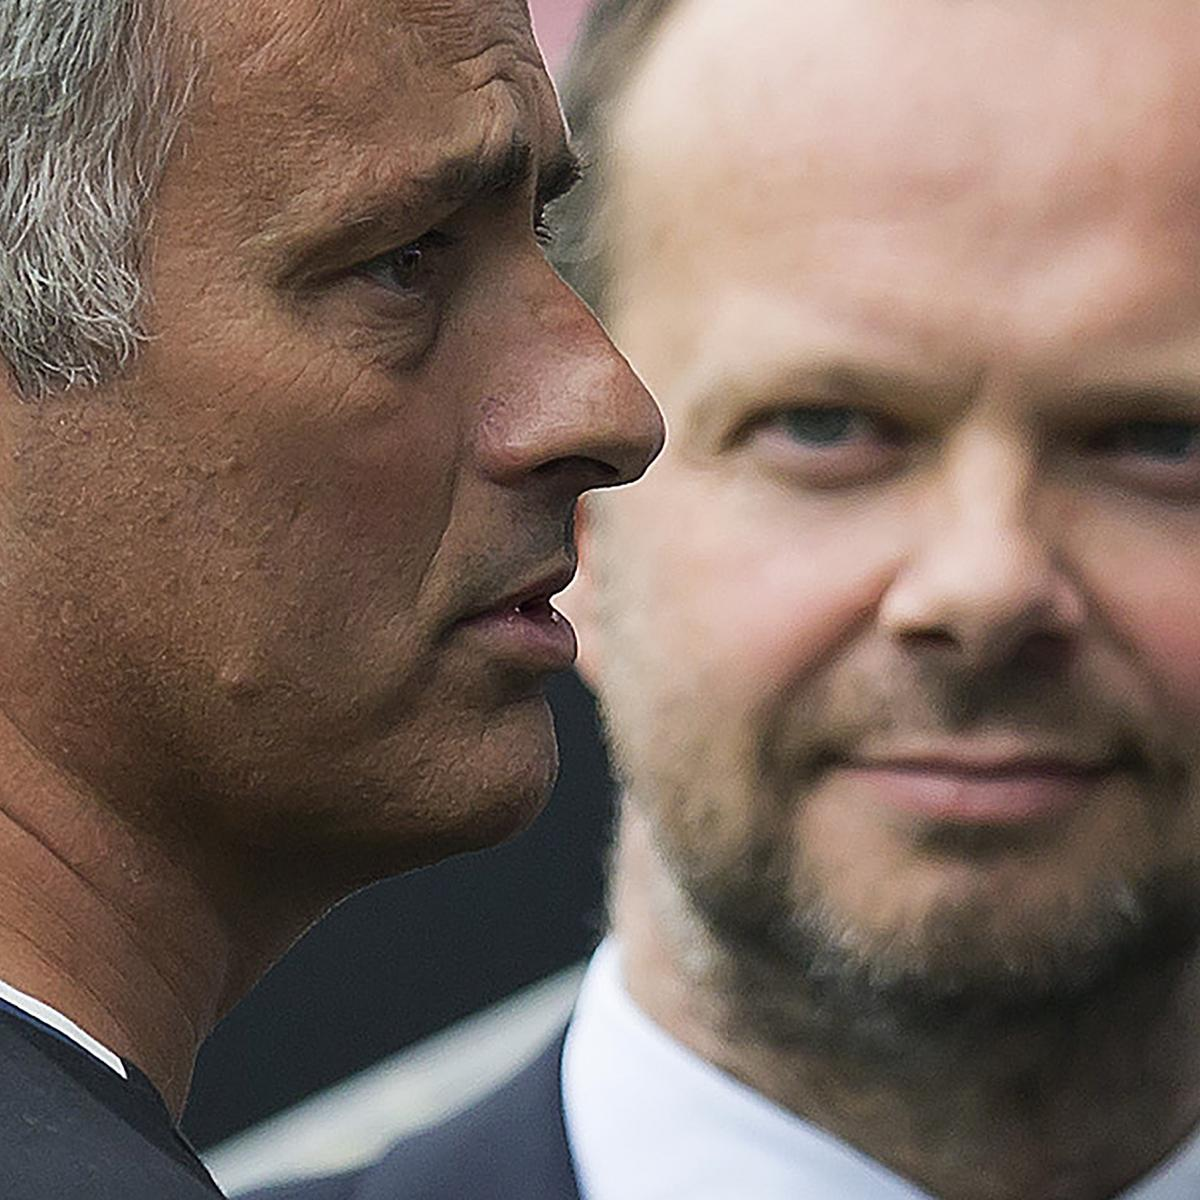 Manchester United Latest Transfer Window: Best And Worst Moves Can Manchester United Make In The